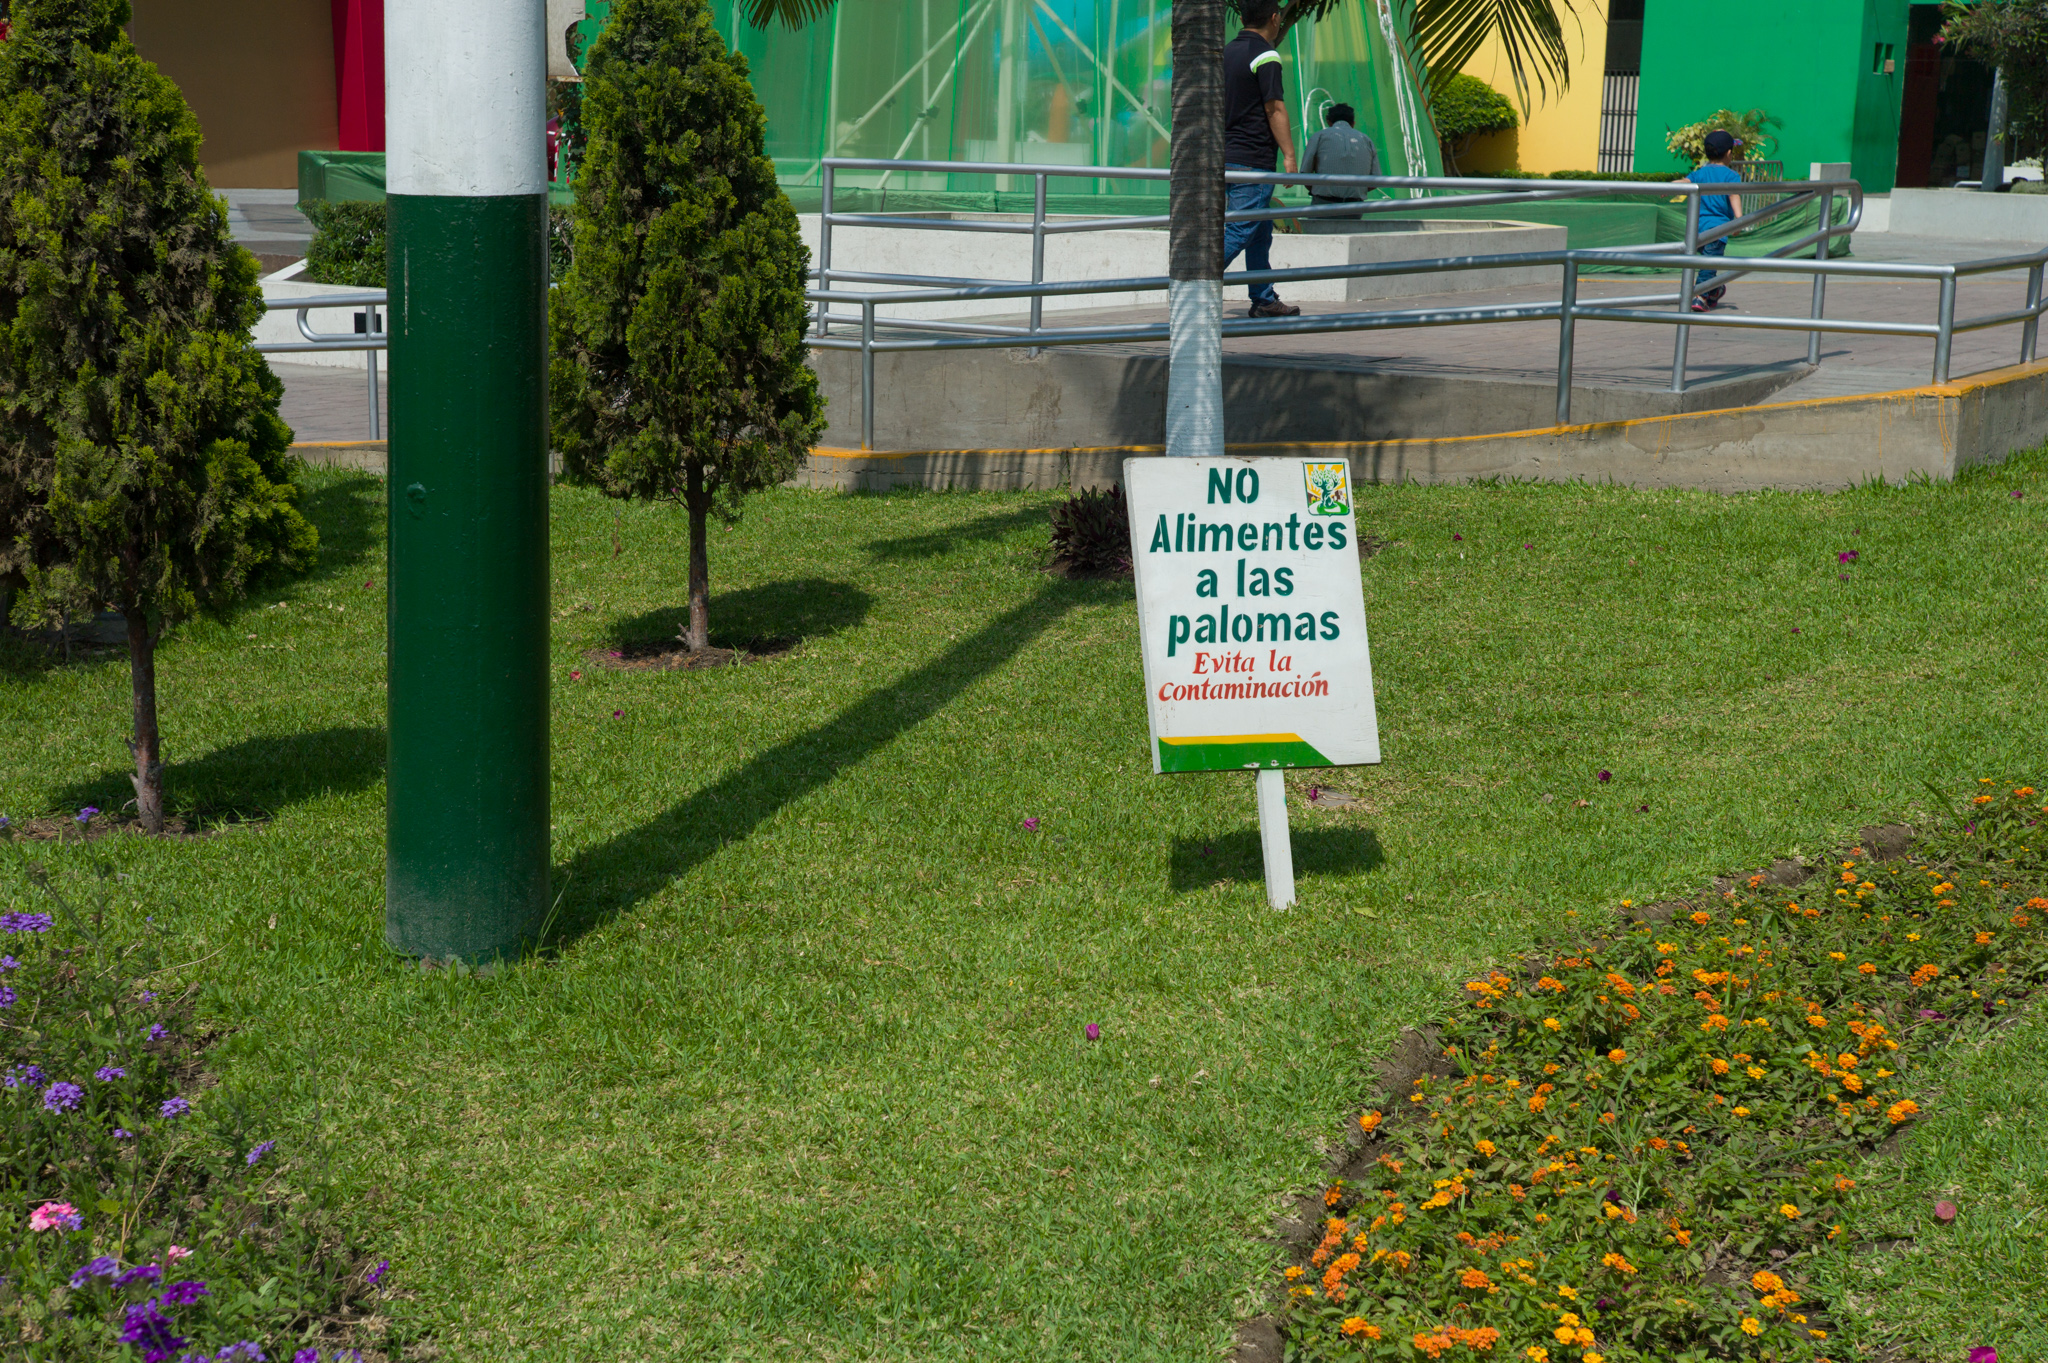 """Main district plaza, adjacent to Los Olivos's municipality. Sign reads """"do not feed the pigeons. Avoid polluting."""""""